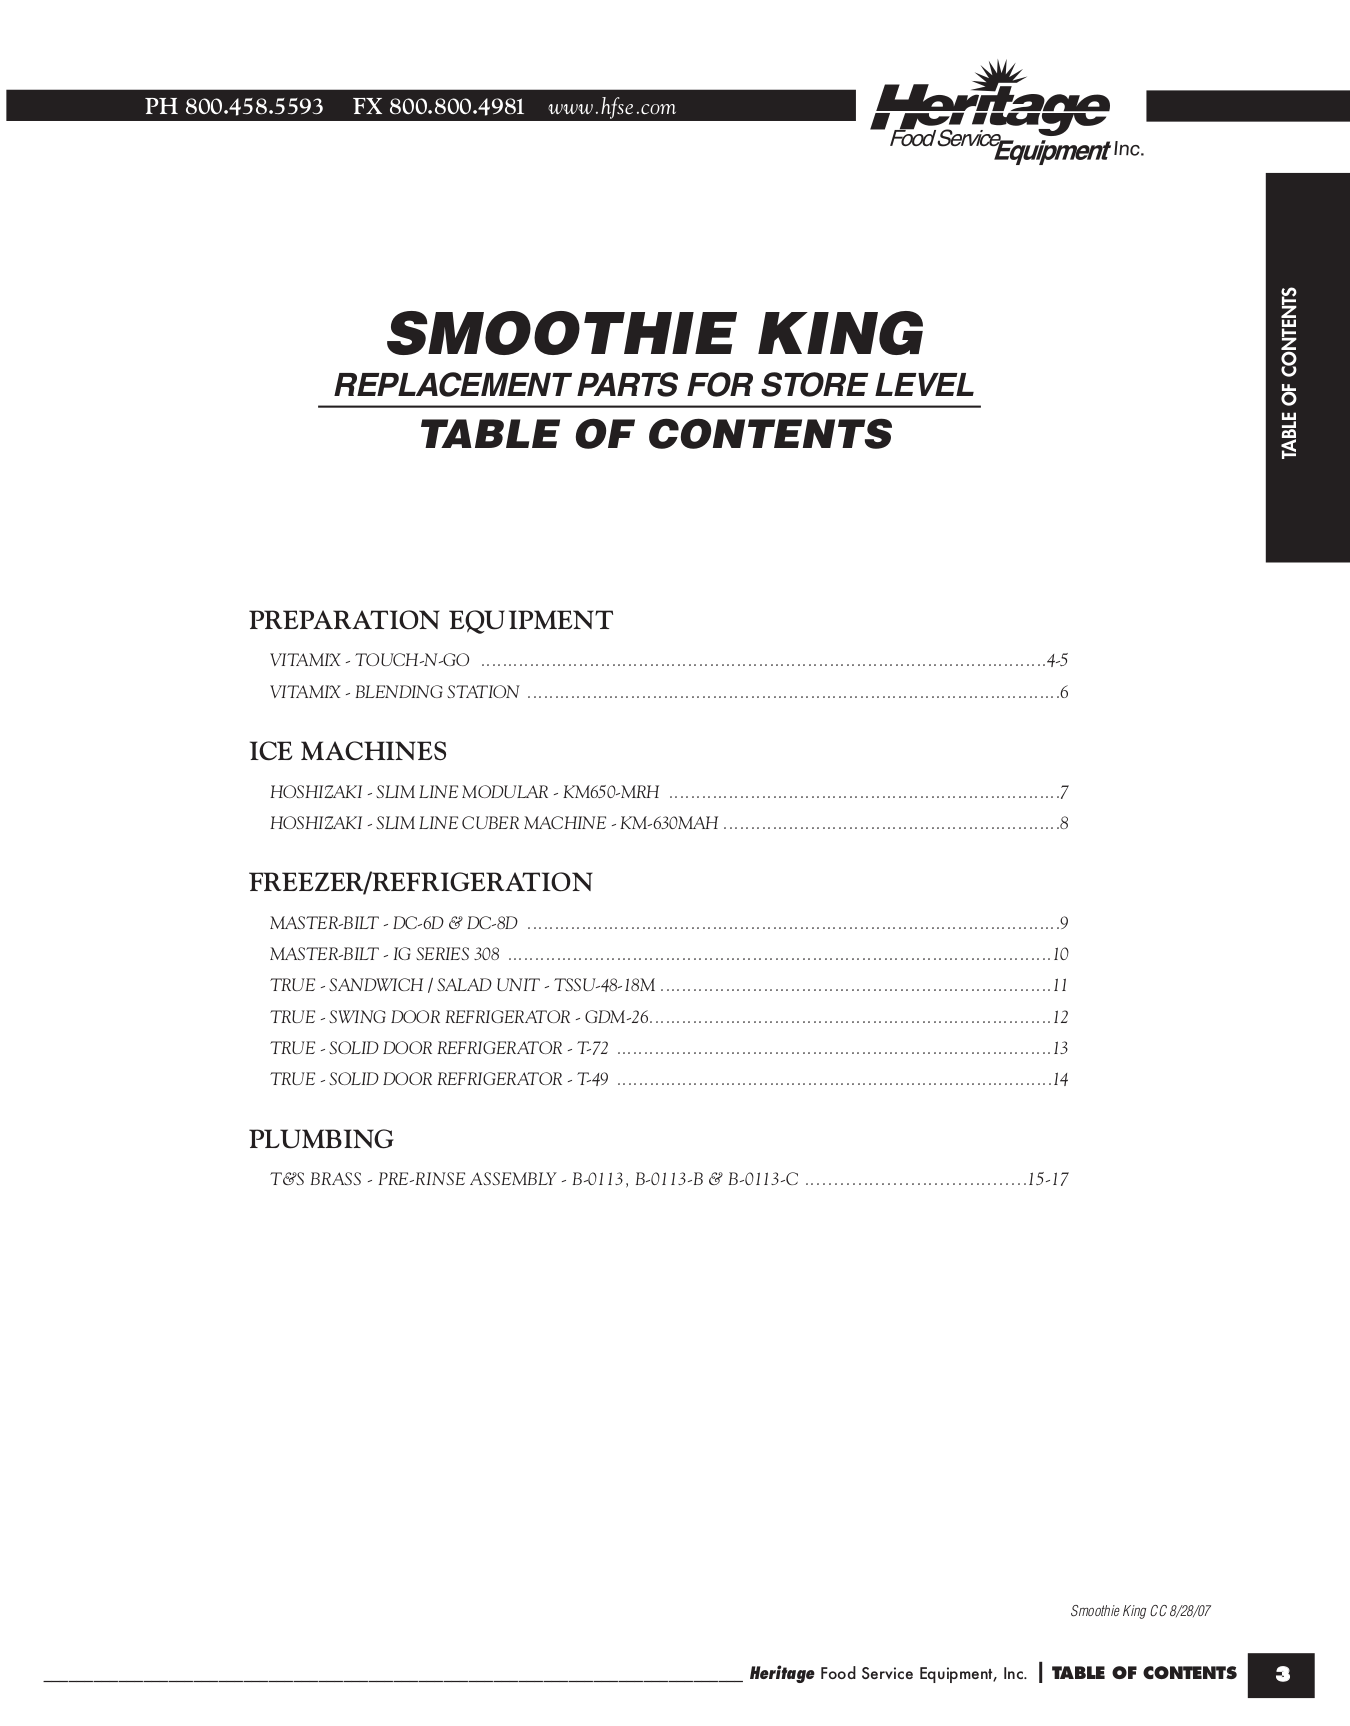 Smoothie King SPCE.pdf 0 download free pdf for true gdm 26 refrigerator manual true gdm 26 wiring diagram at edmiracle.co